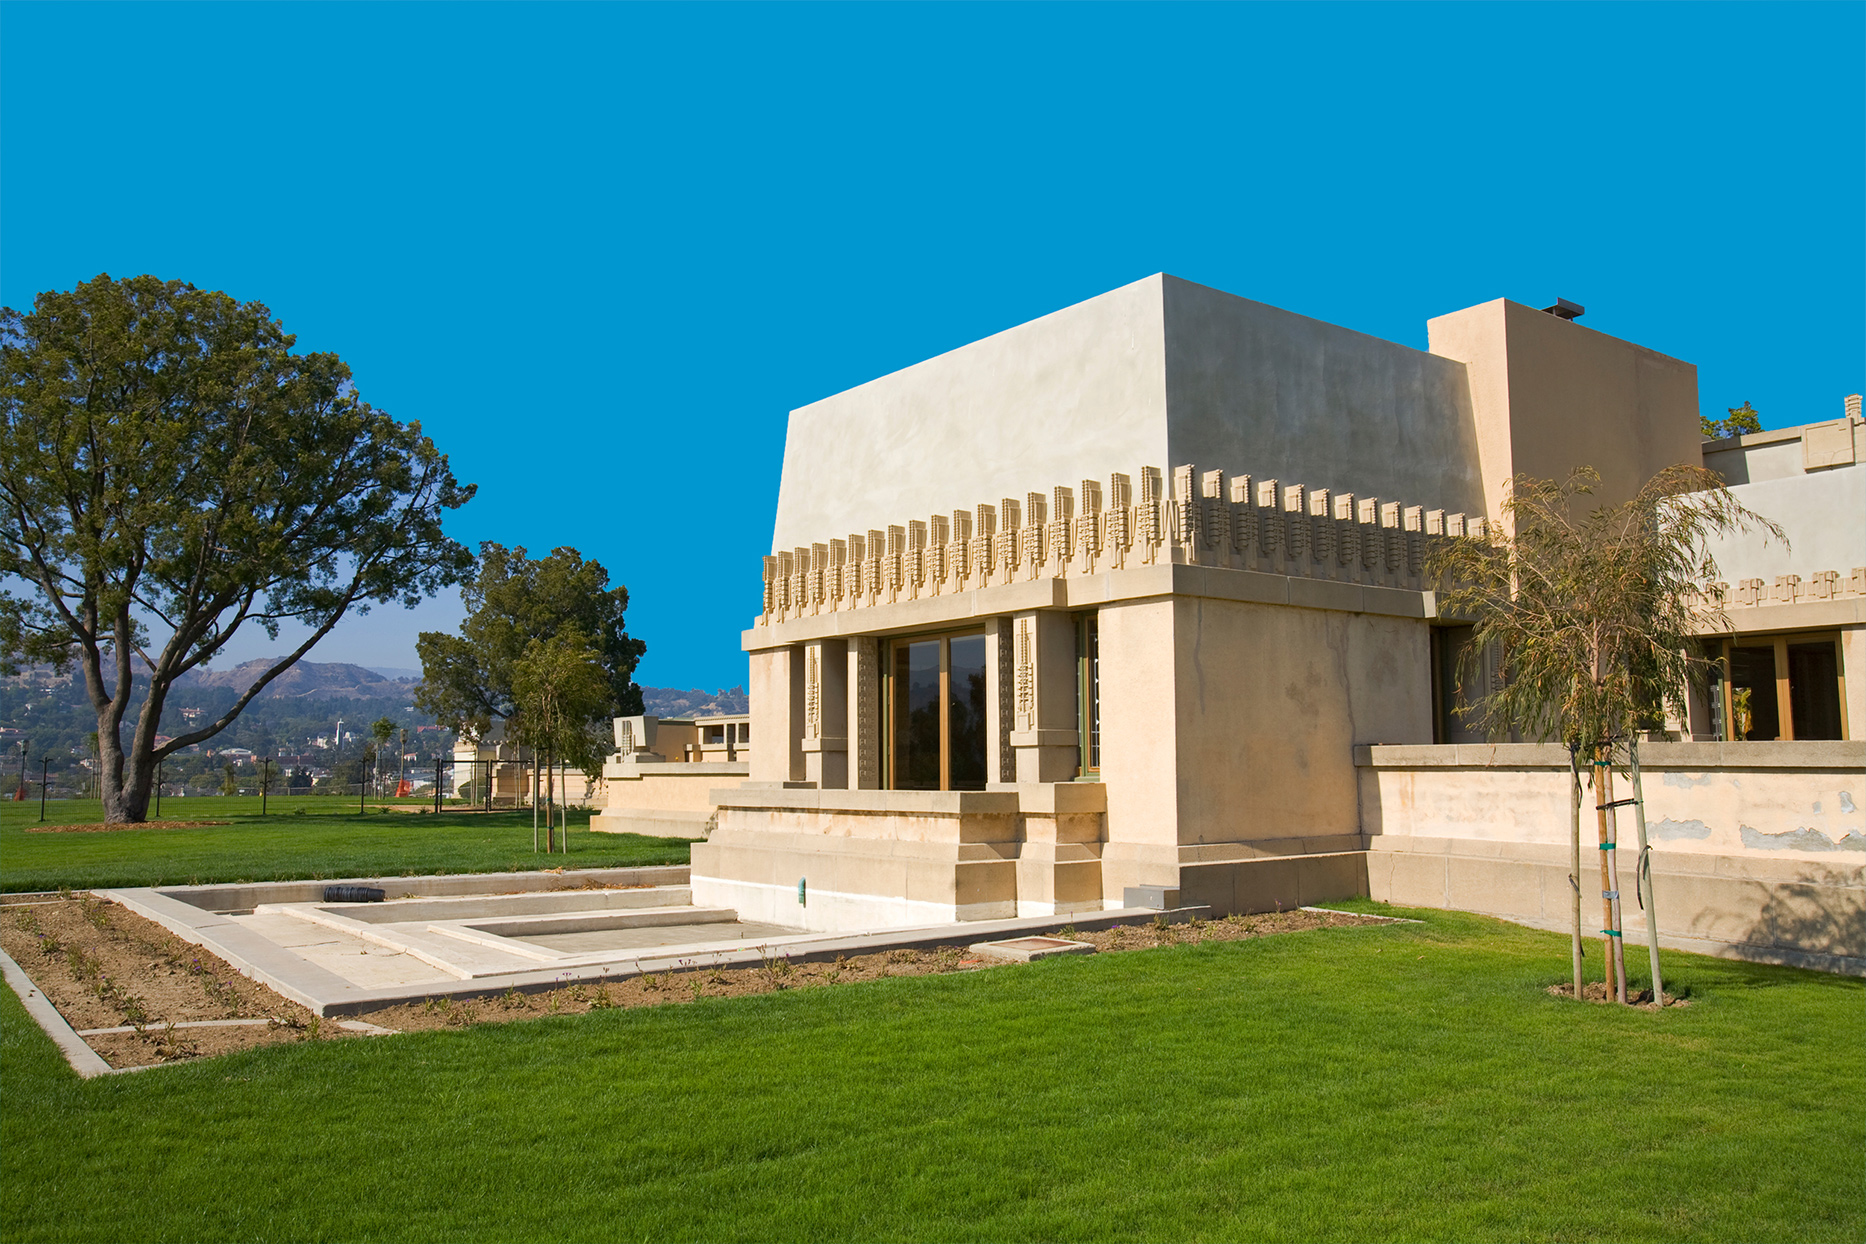 Hollyhock House with blue sky background